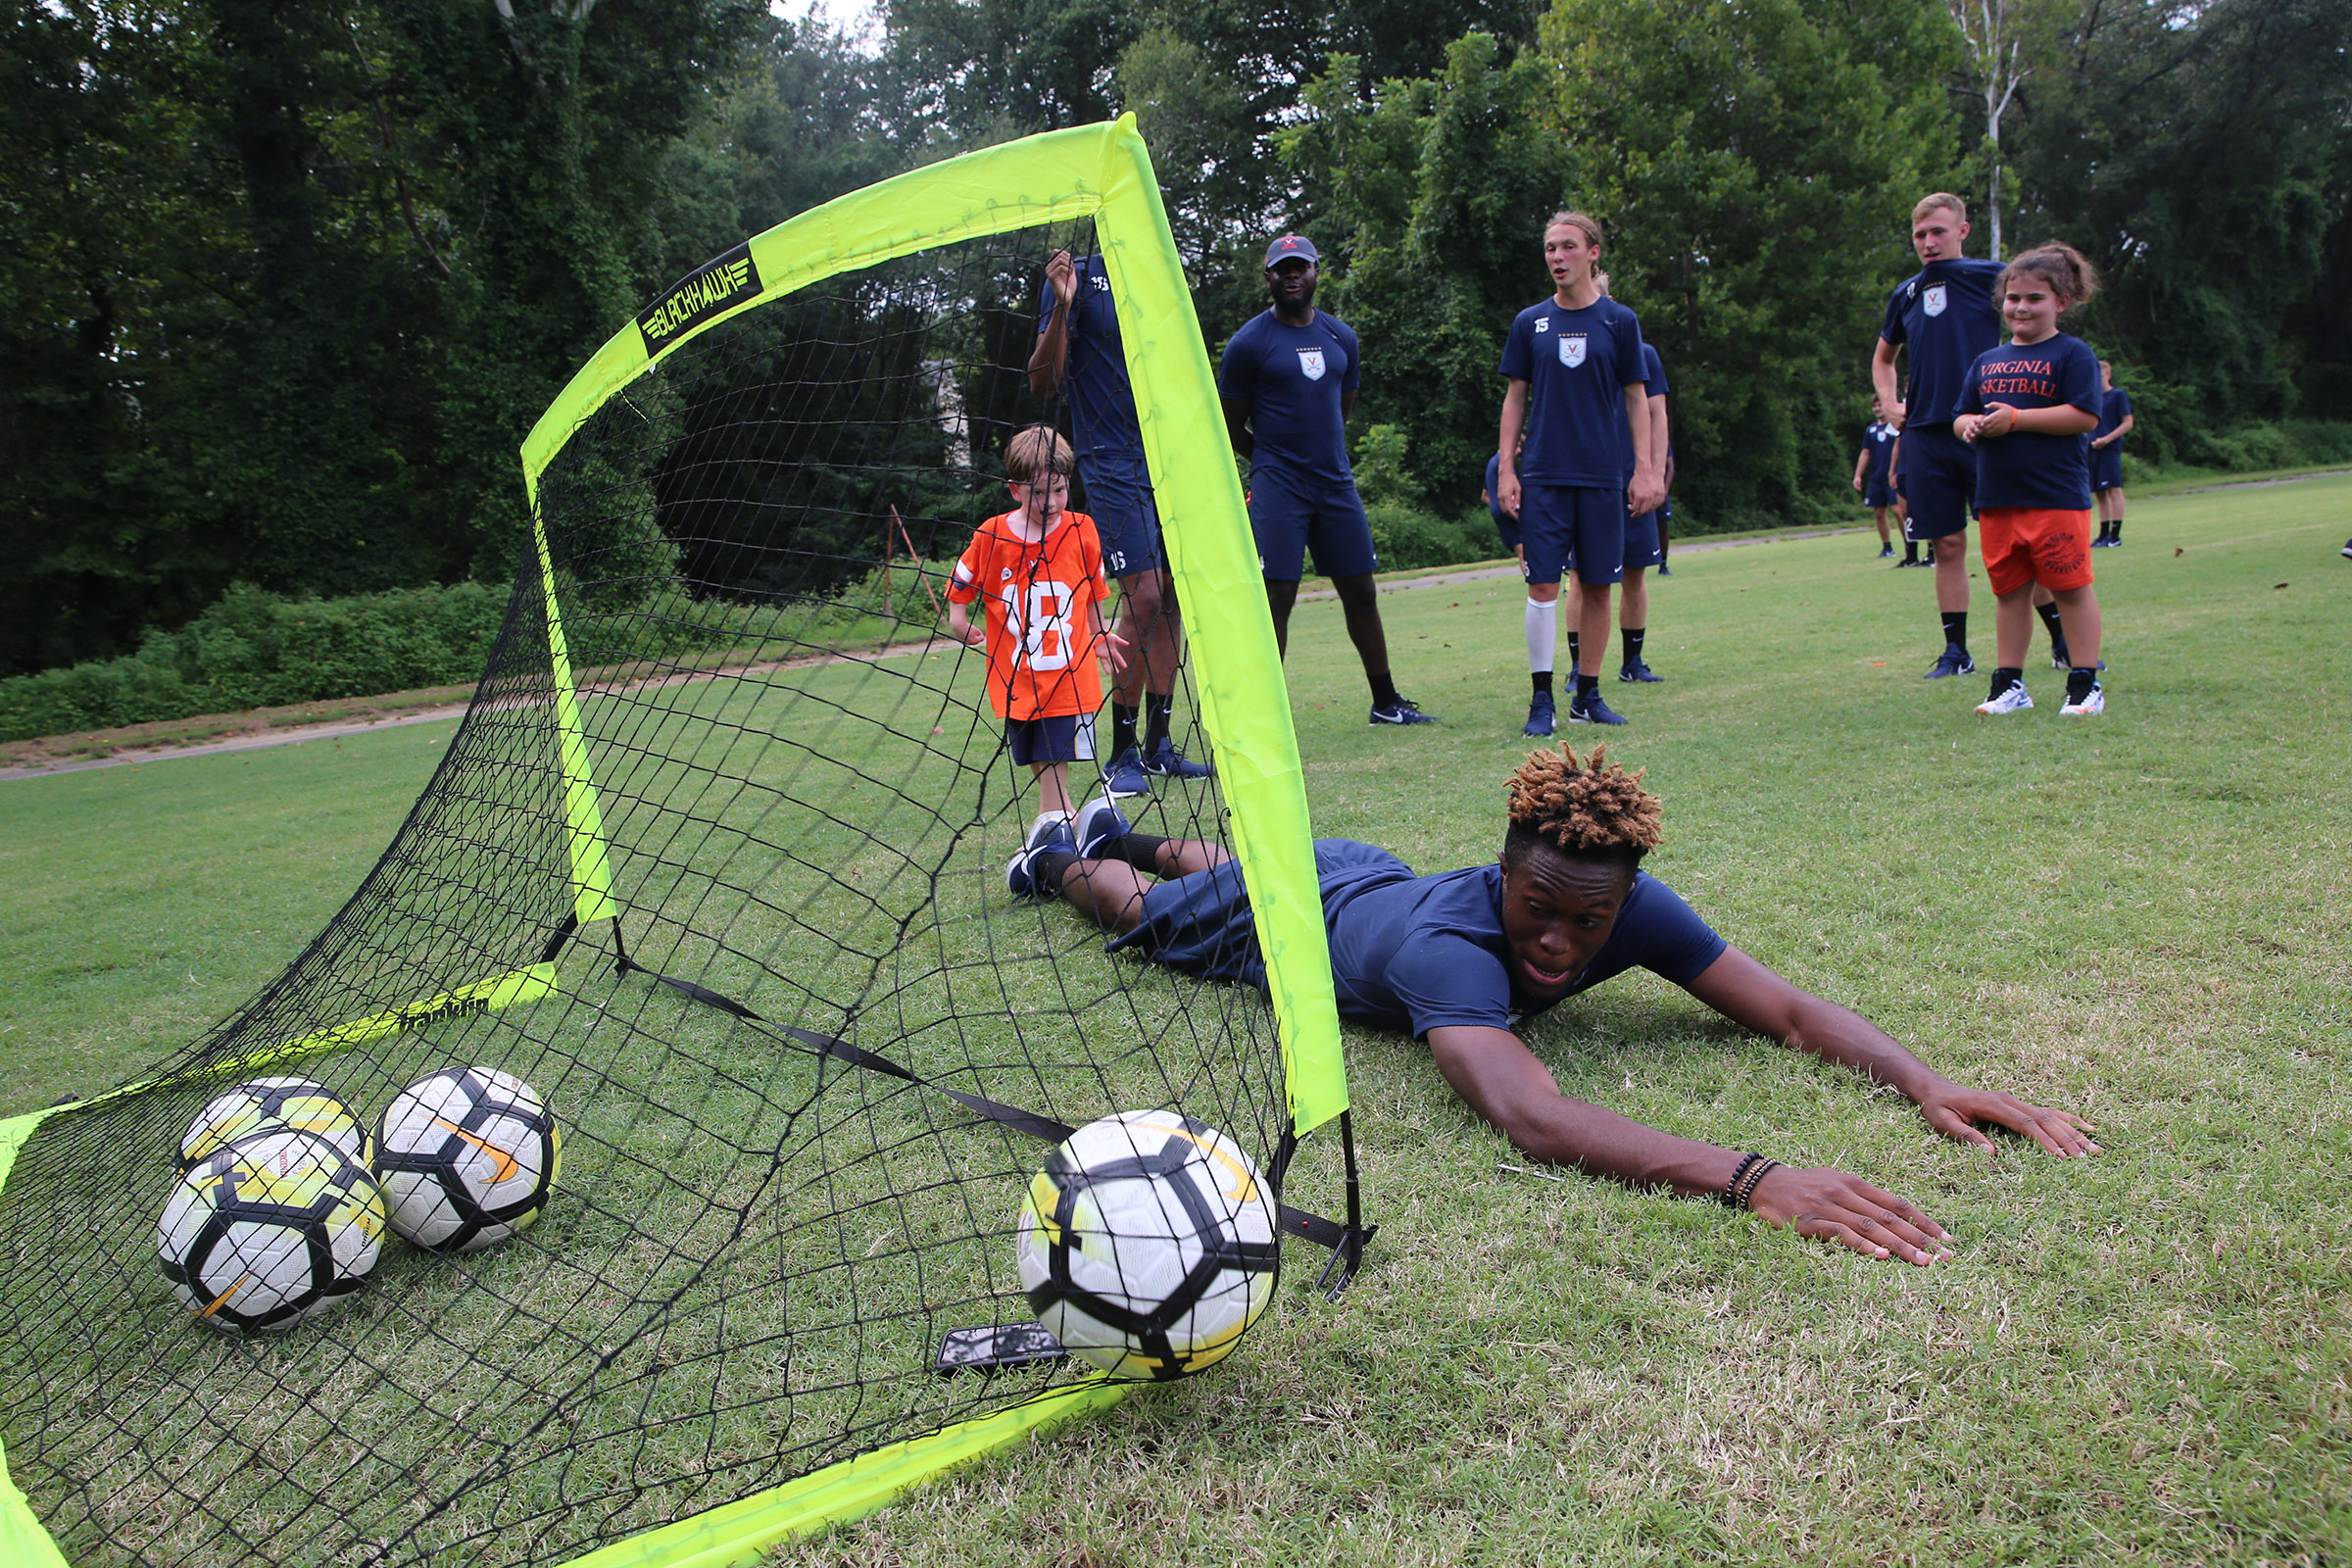 Third-year soccer player Simeon Okoro might need to brush up on his goalie skills.